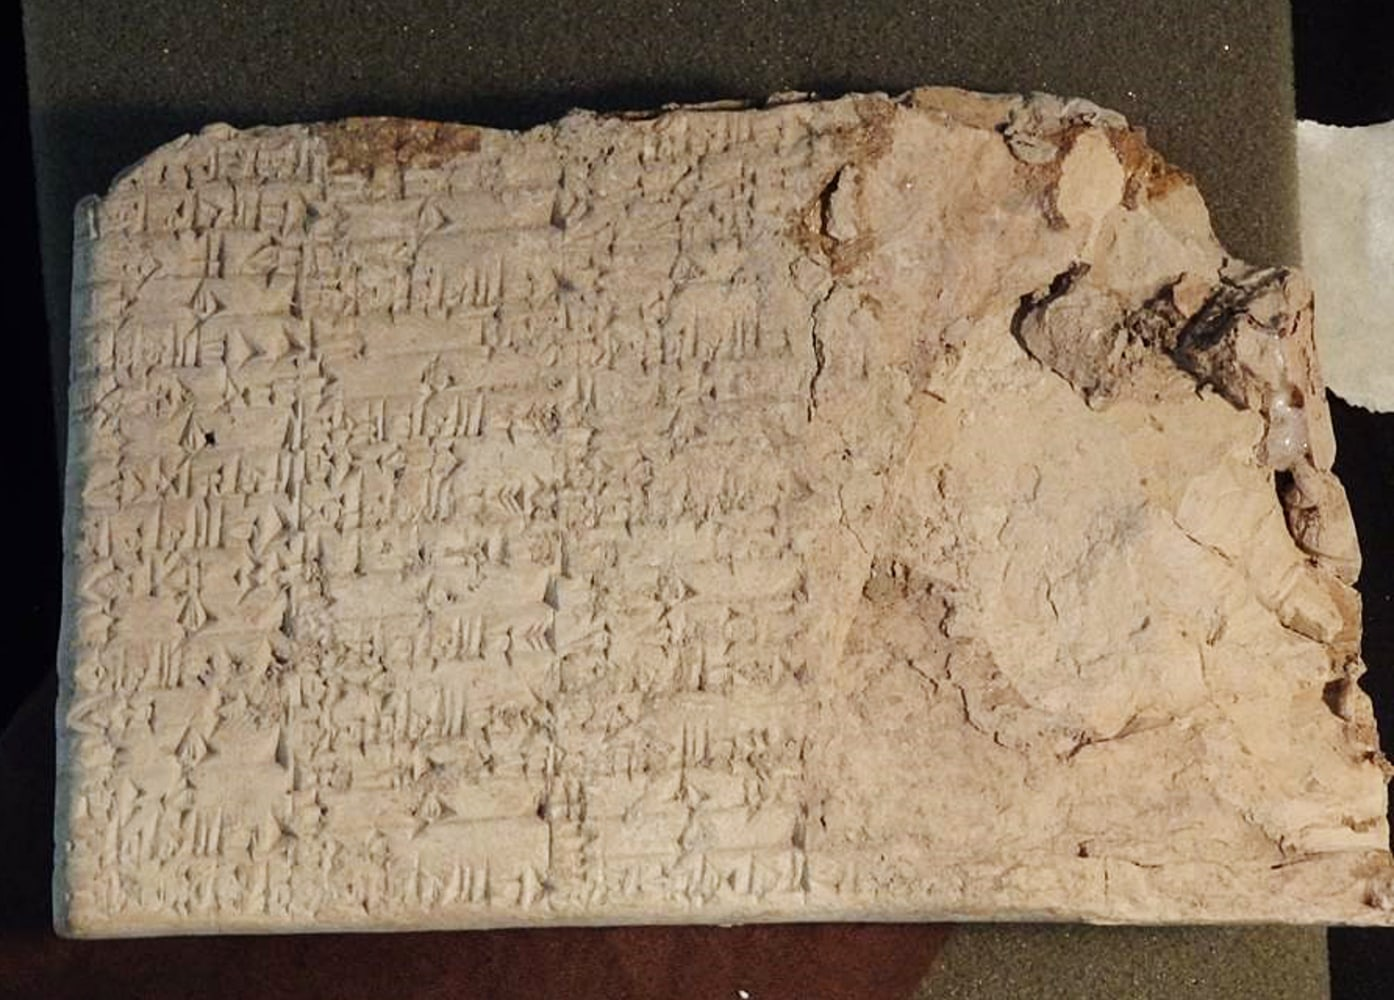 Hobby Lobby Agrees to Return Smuggled Iraqi Artifacts